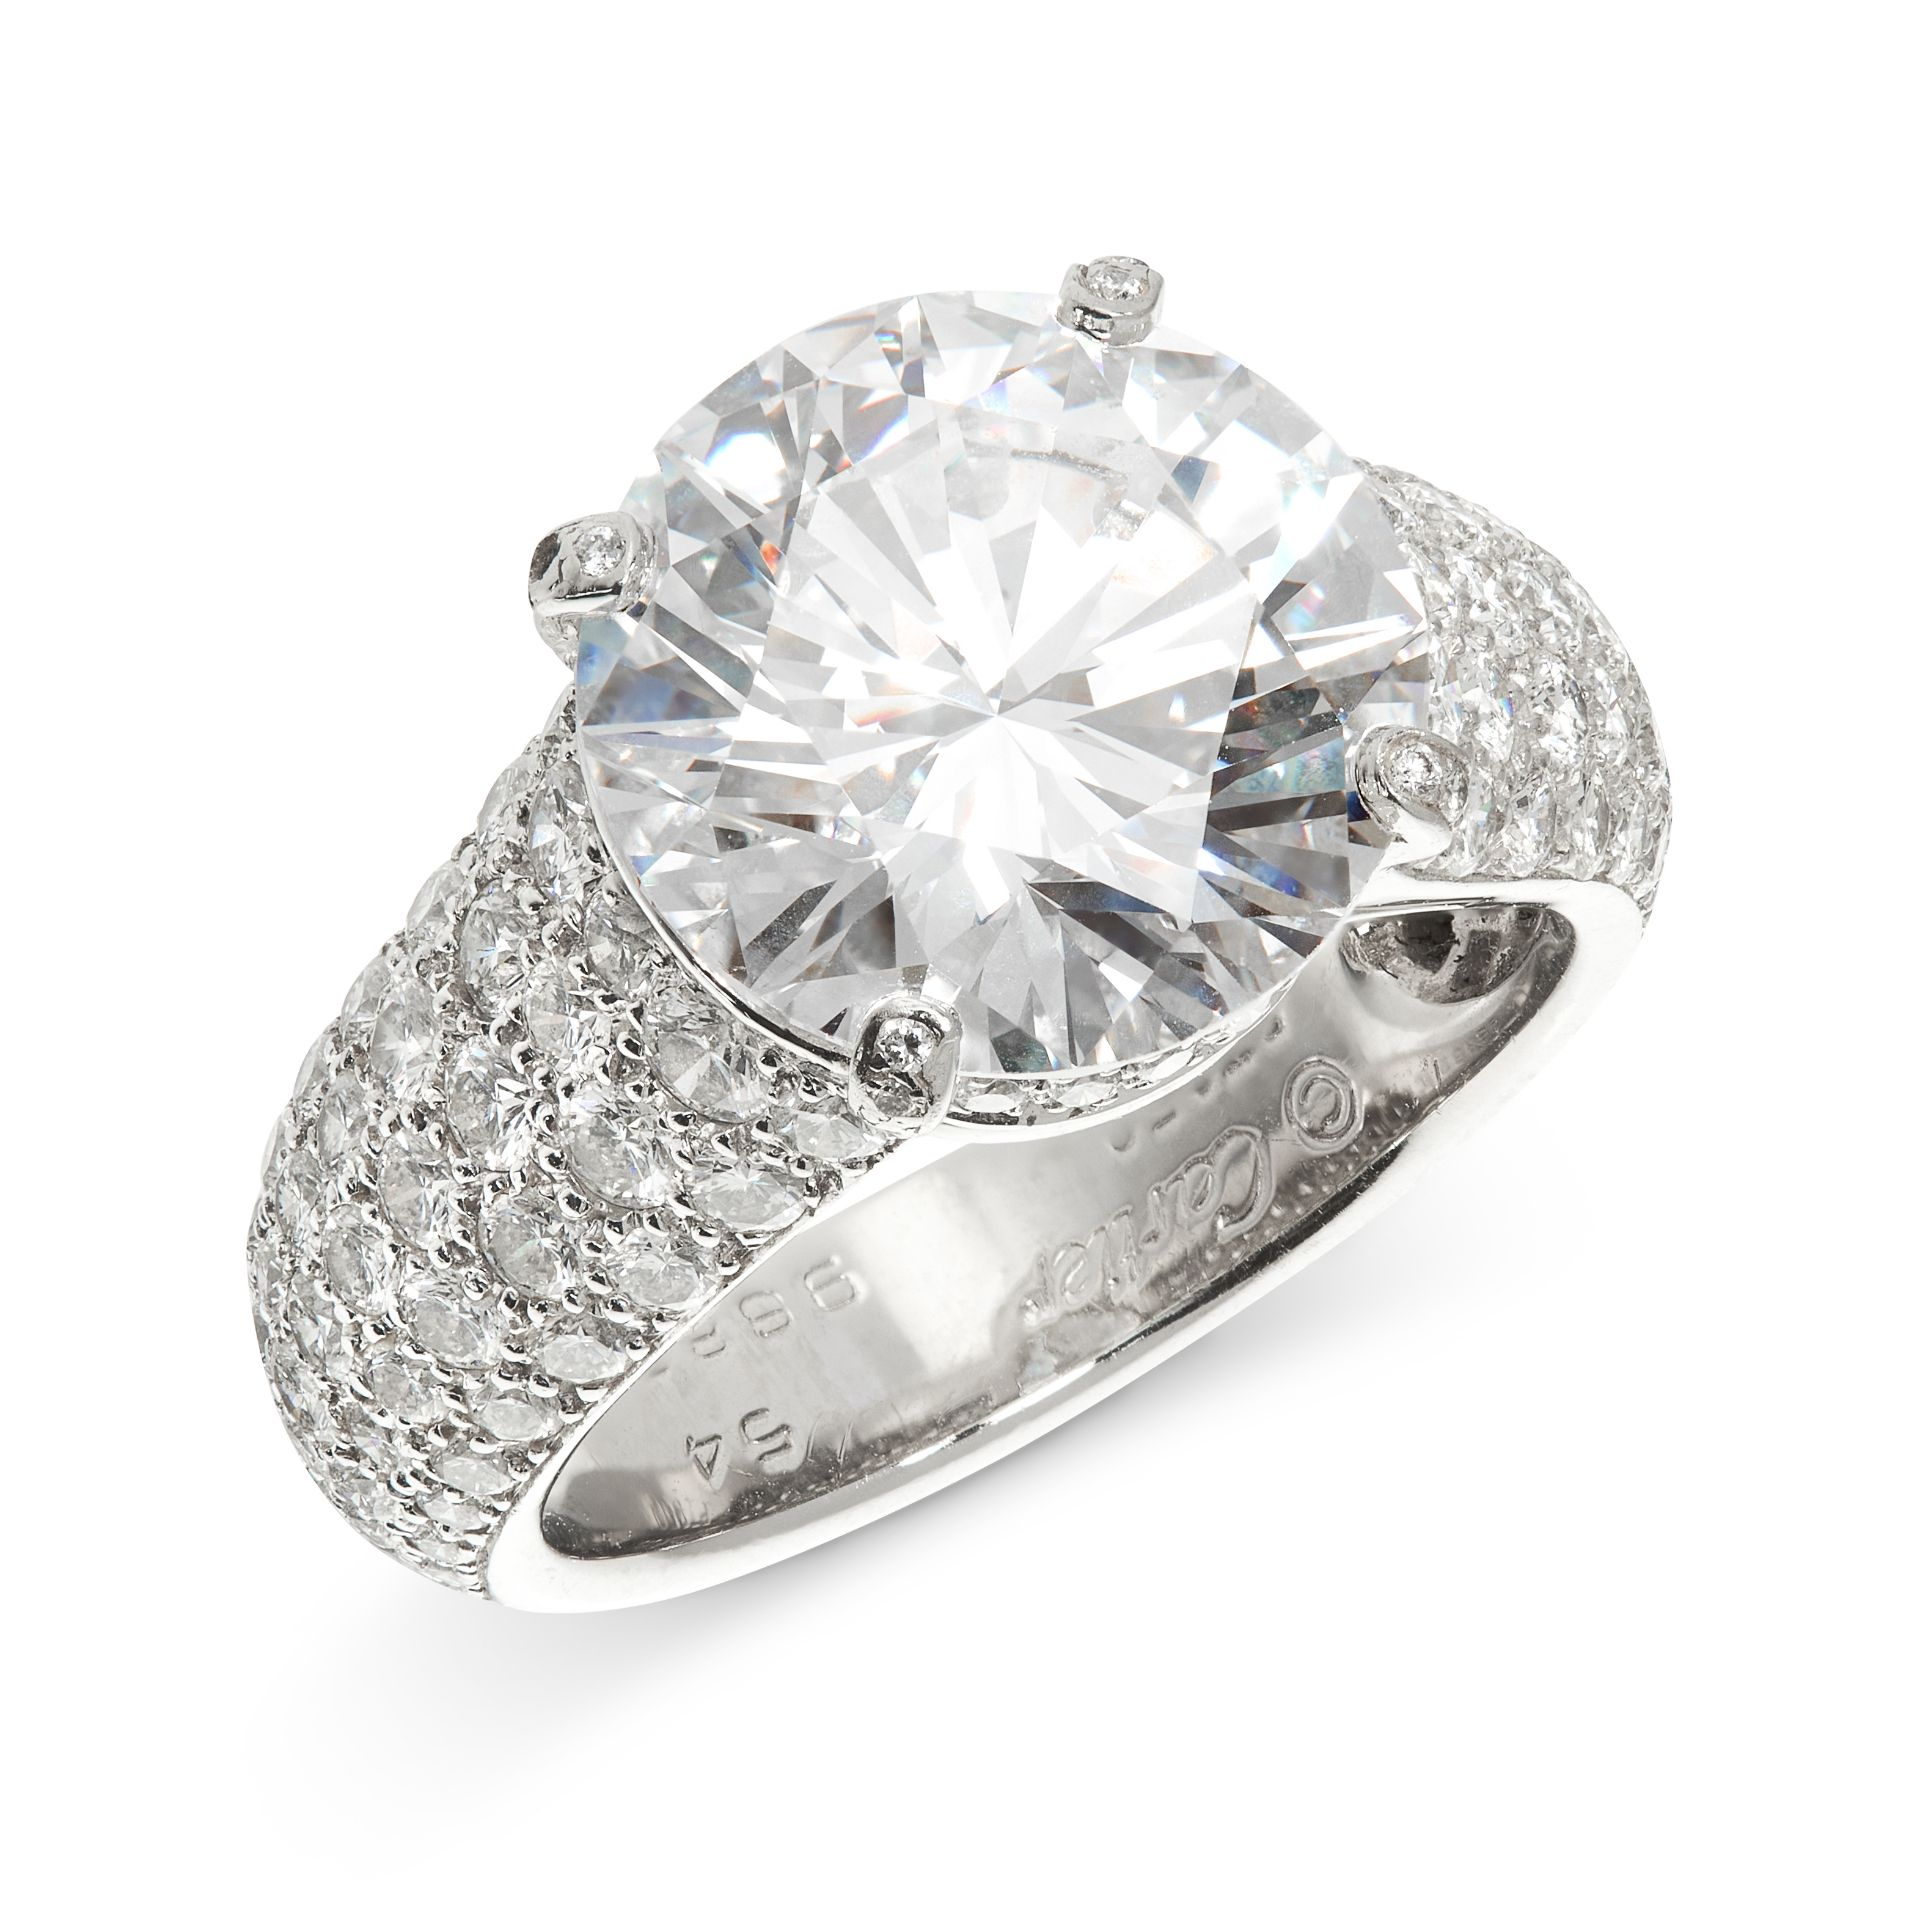 AN IMPORTANT 6.36 CARAT SOLITAIRE DIAMOND RING, CARTIER in platinum, set with a round cut diamond of - Bild 2 aus 2